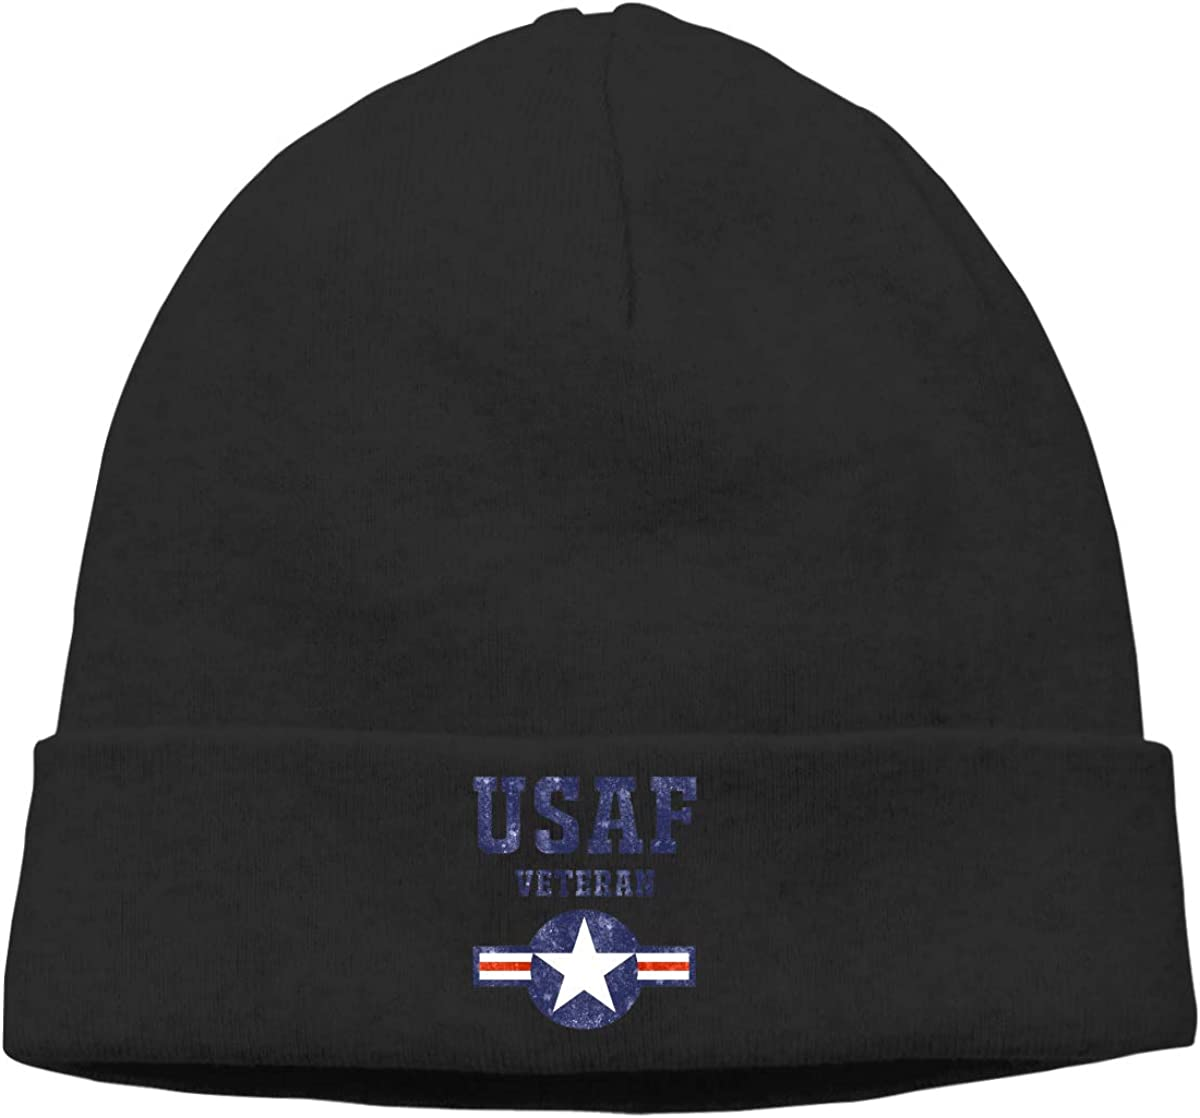 CgyOIUY-lop Beanie Hat Warm Hats Skull Cap Knitted Hat Air Force USAF Veteran